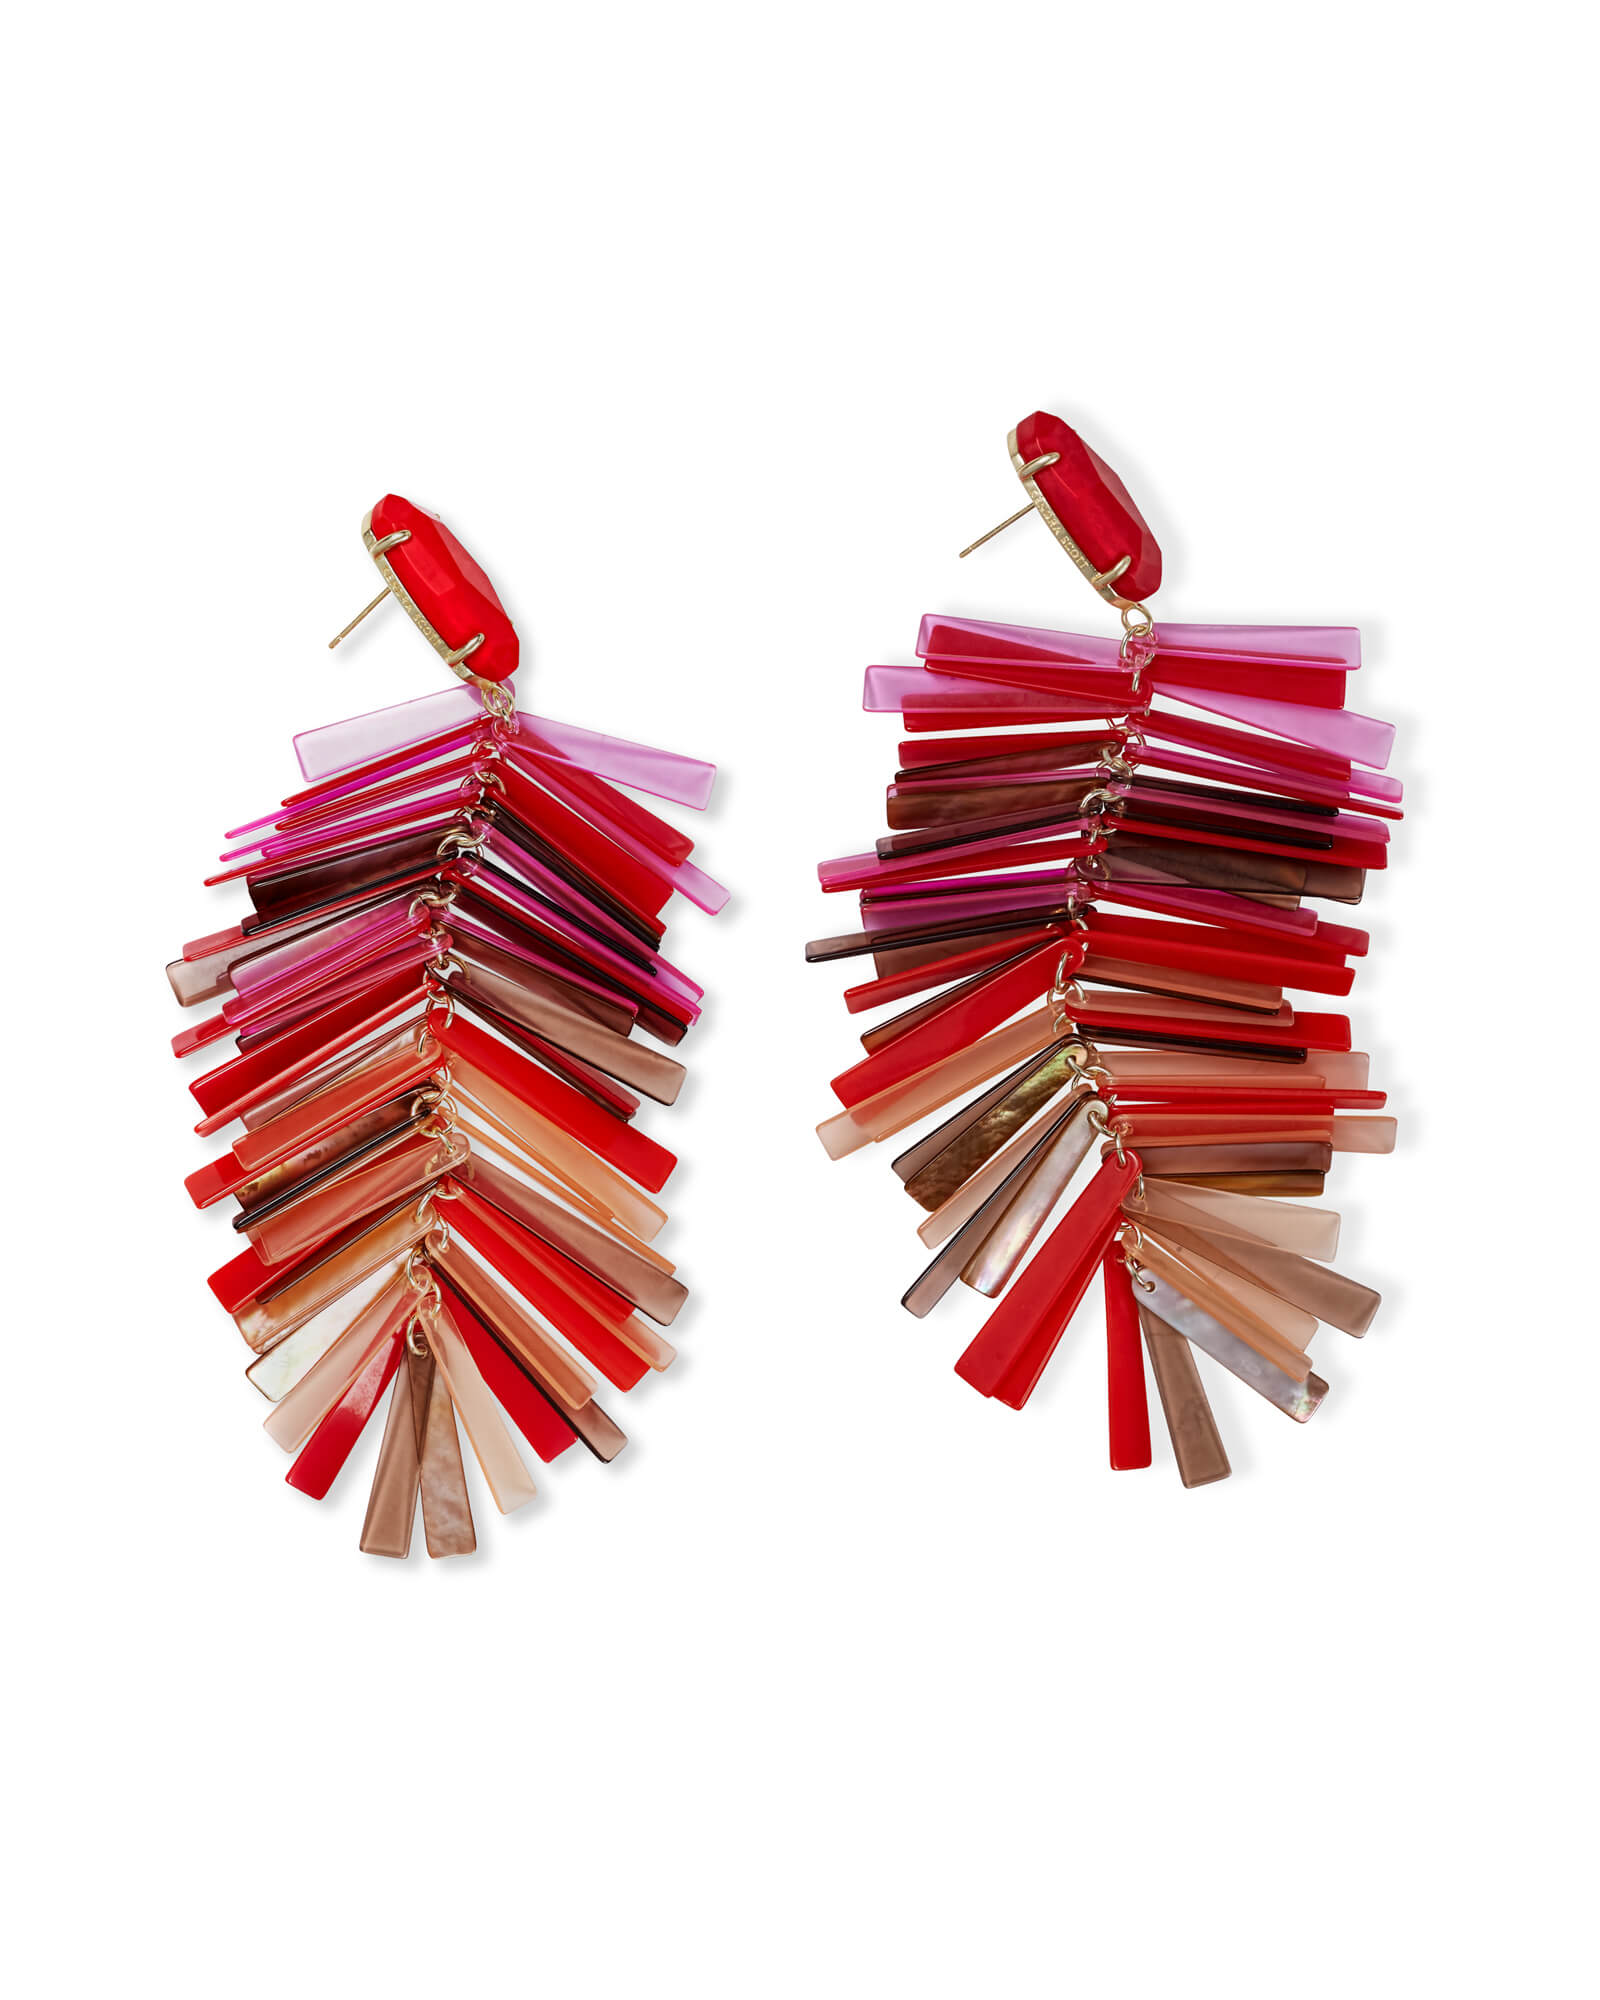 Justyne Gold Statement Earrings in Red Mix Matte Opaque Glass